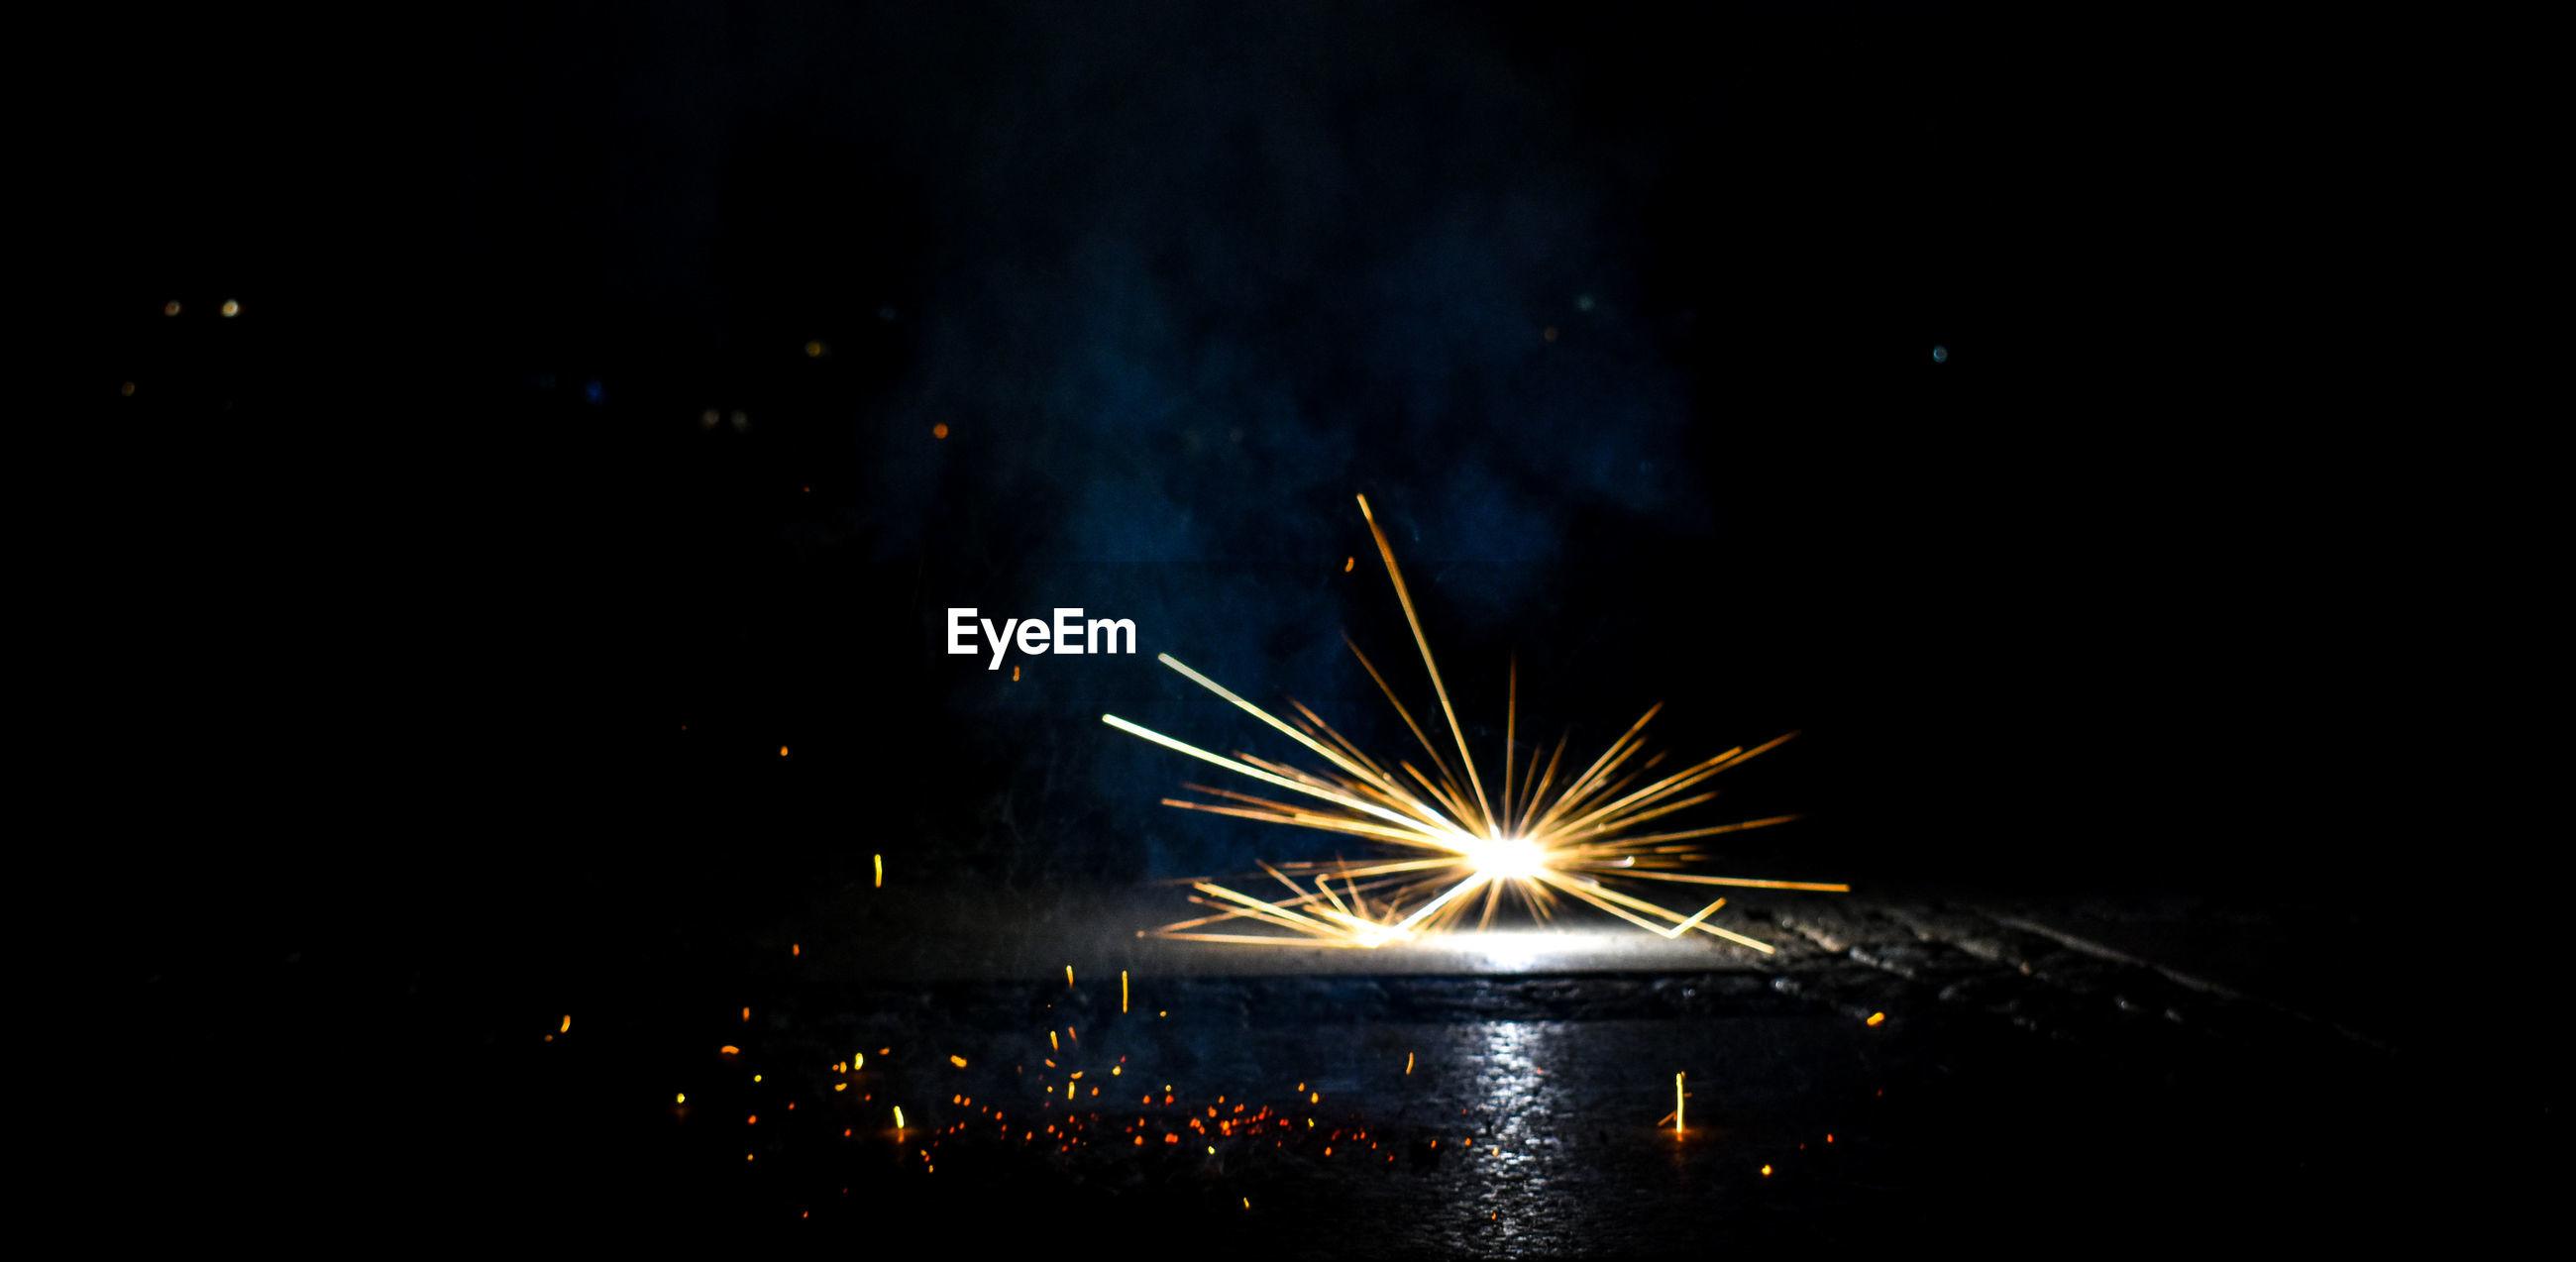 illuminated, firework, night, glowing, celebration, long exposure, motion, firework display, event, firework - man made object, exploding, sparks, arts culture and entertainment, blurred motion, nature, light, sky, no people, burning, reflection, dark, outdoors, sparkler, electric lamp